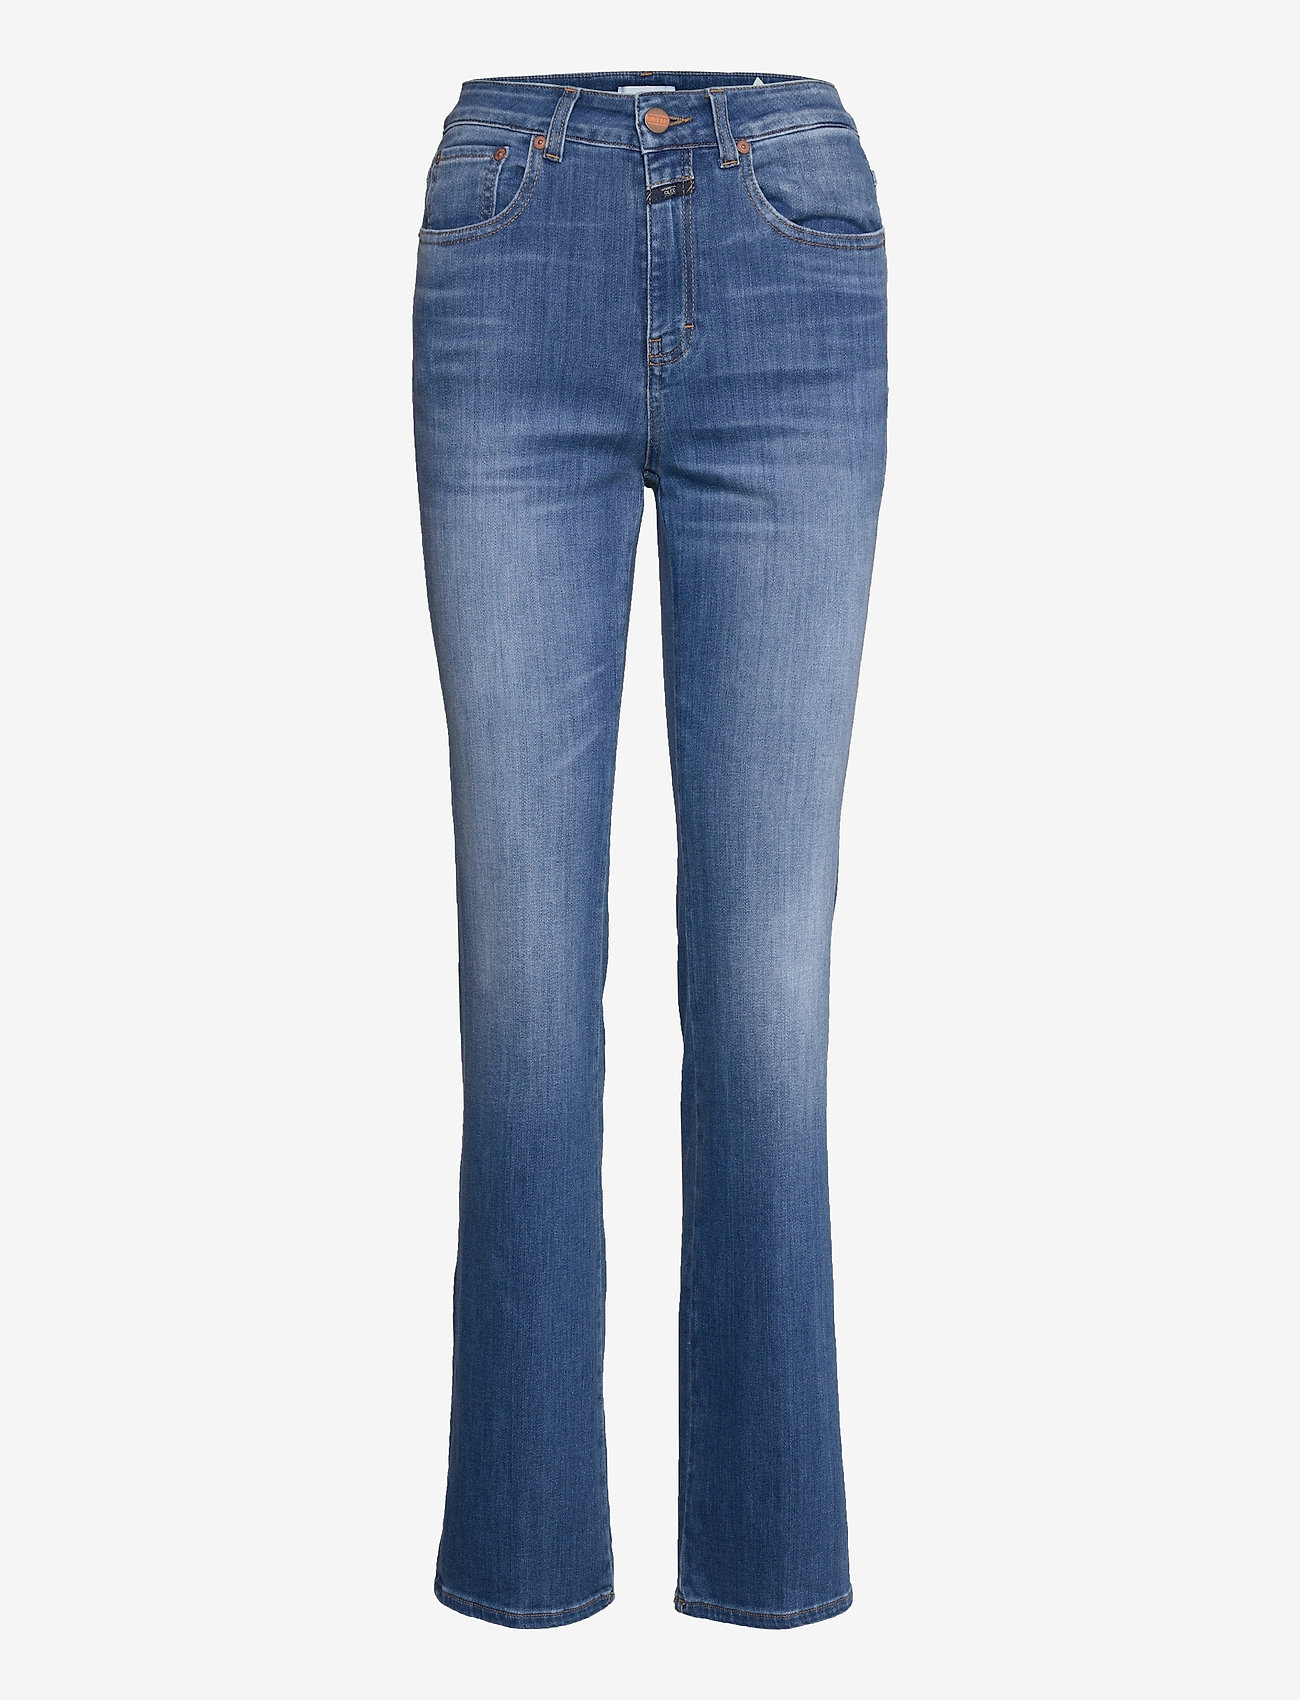 Closed - leaf - boot cut jeans - mid blue - 0